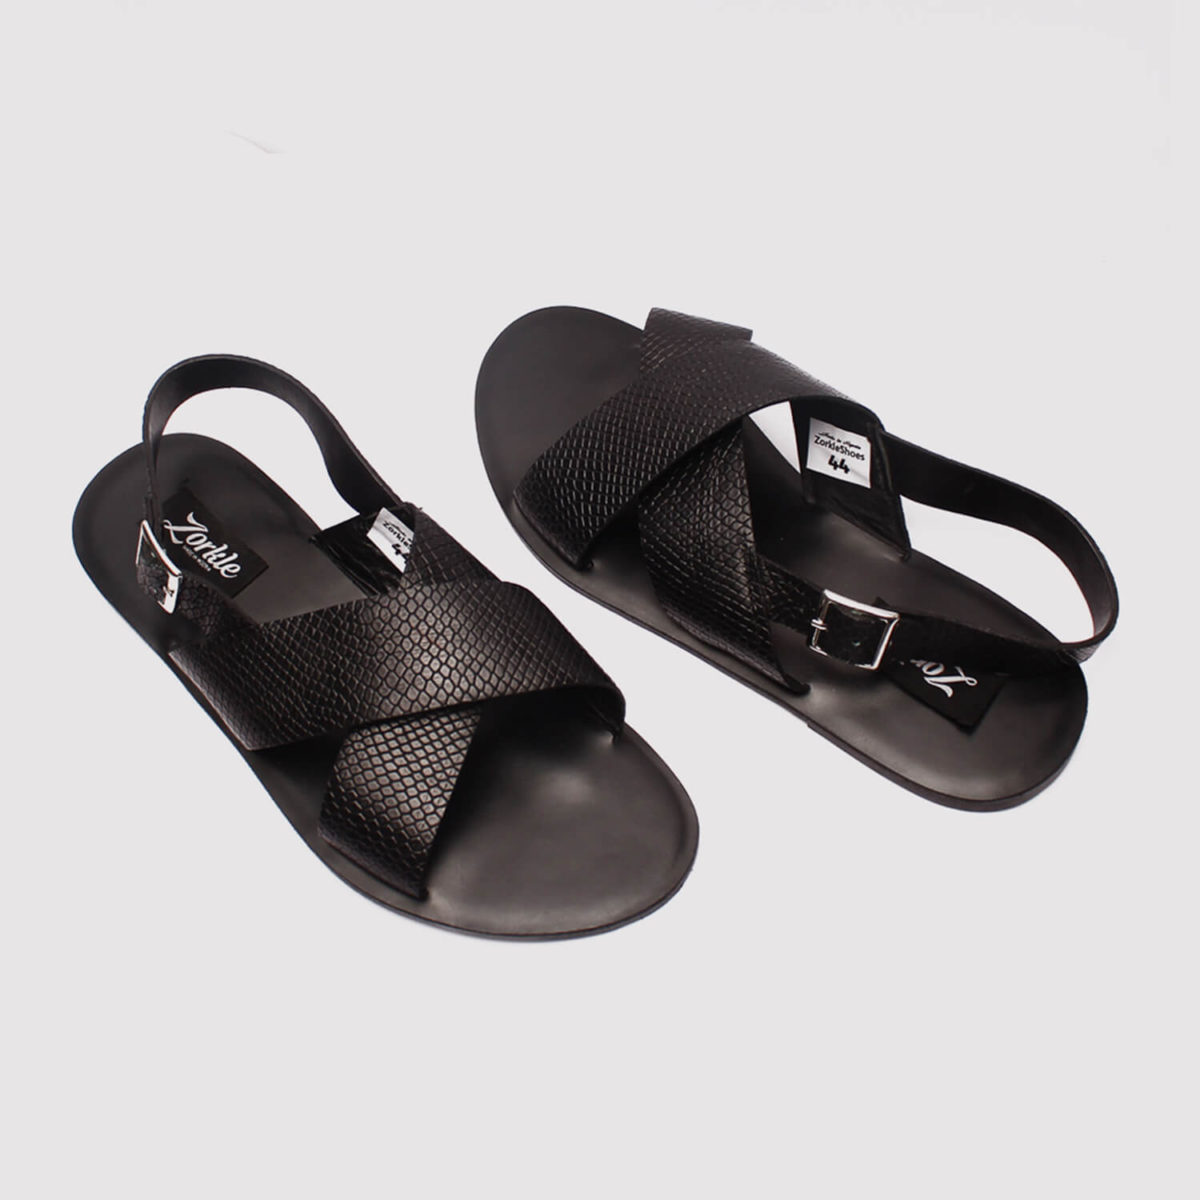 hafred sandals black leather zorkle shoes in lagos nigeria